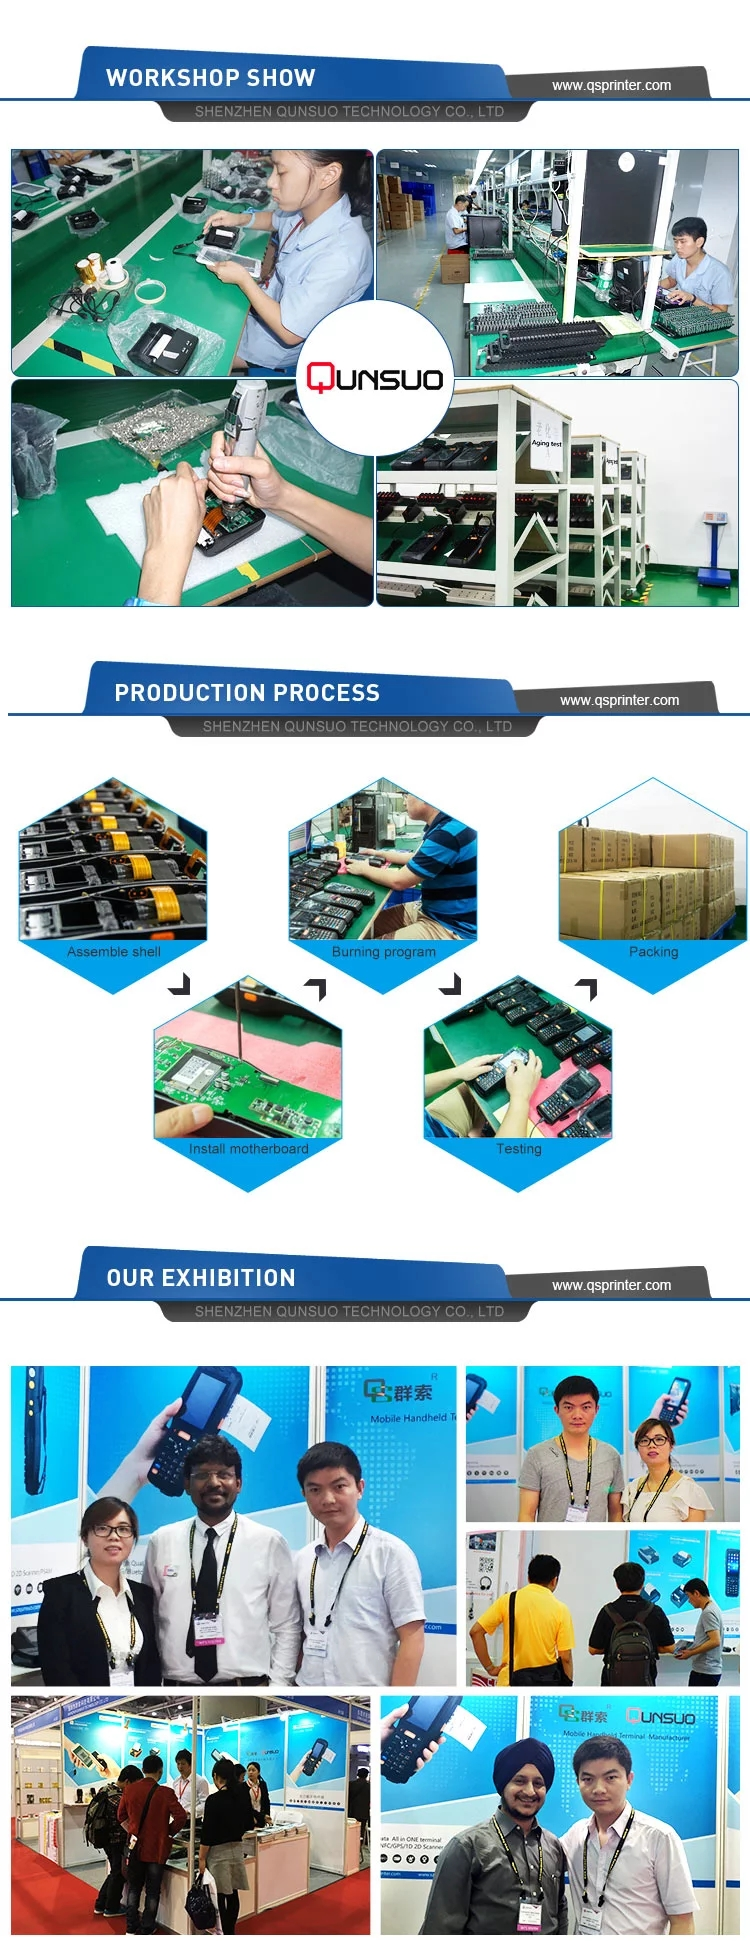 Production line and exhibition